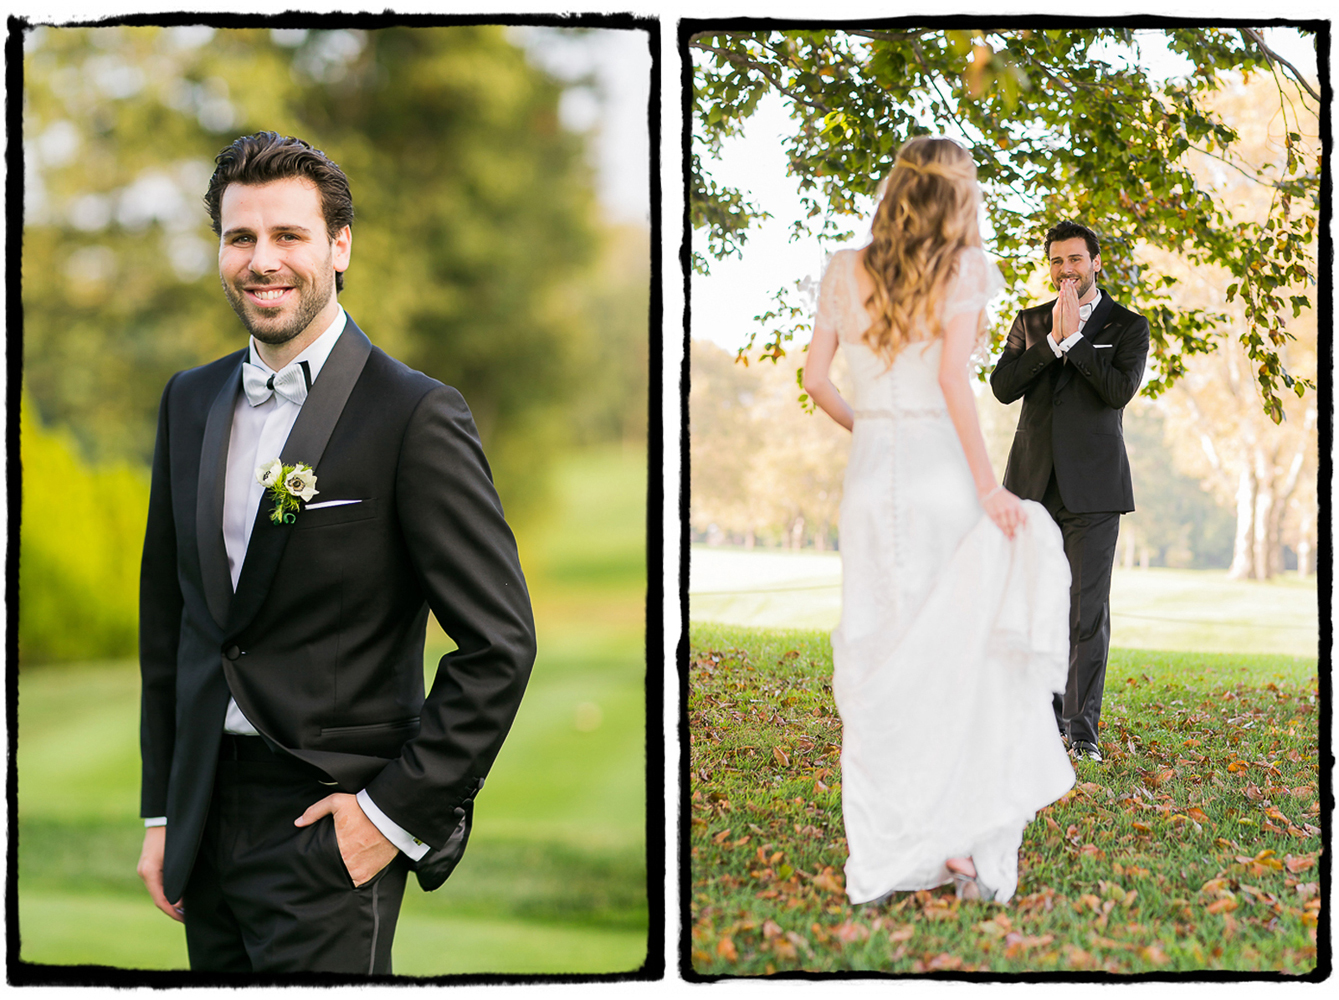 Jaymie and Brad shared a first look under a giant tree on the green at Fresh Meadow Country Club.